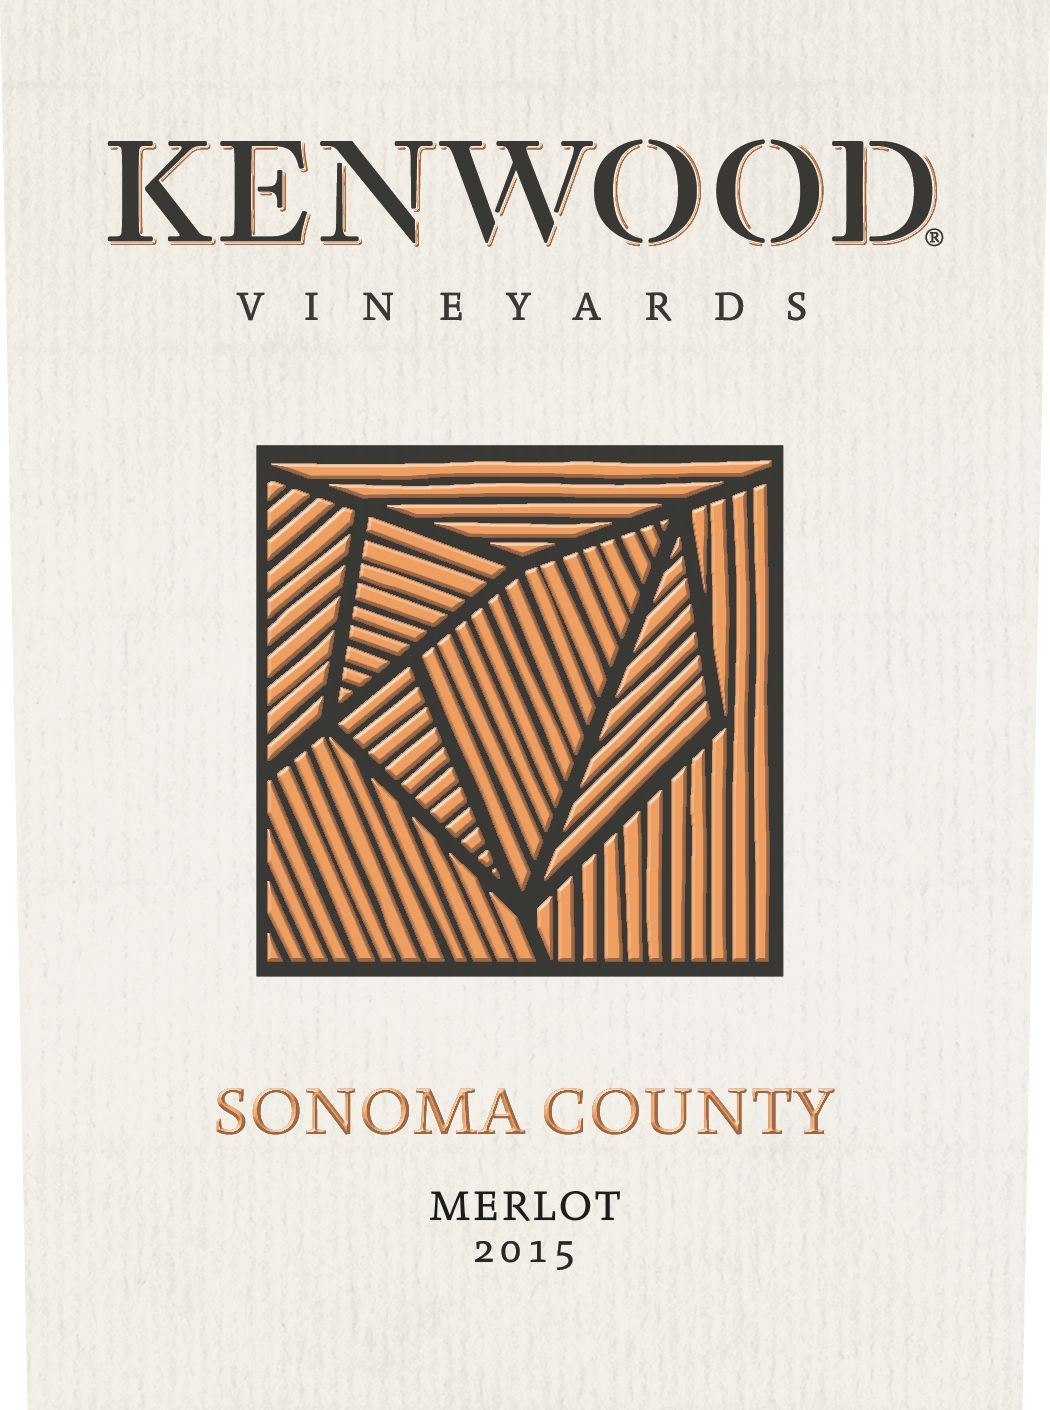 Kenwood Sonoma County Merlot 2015 Front Label